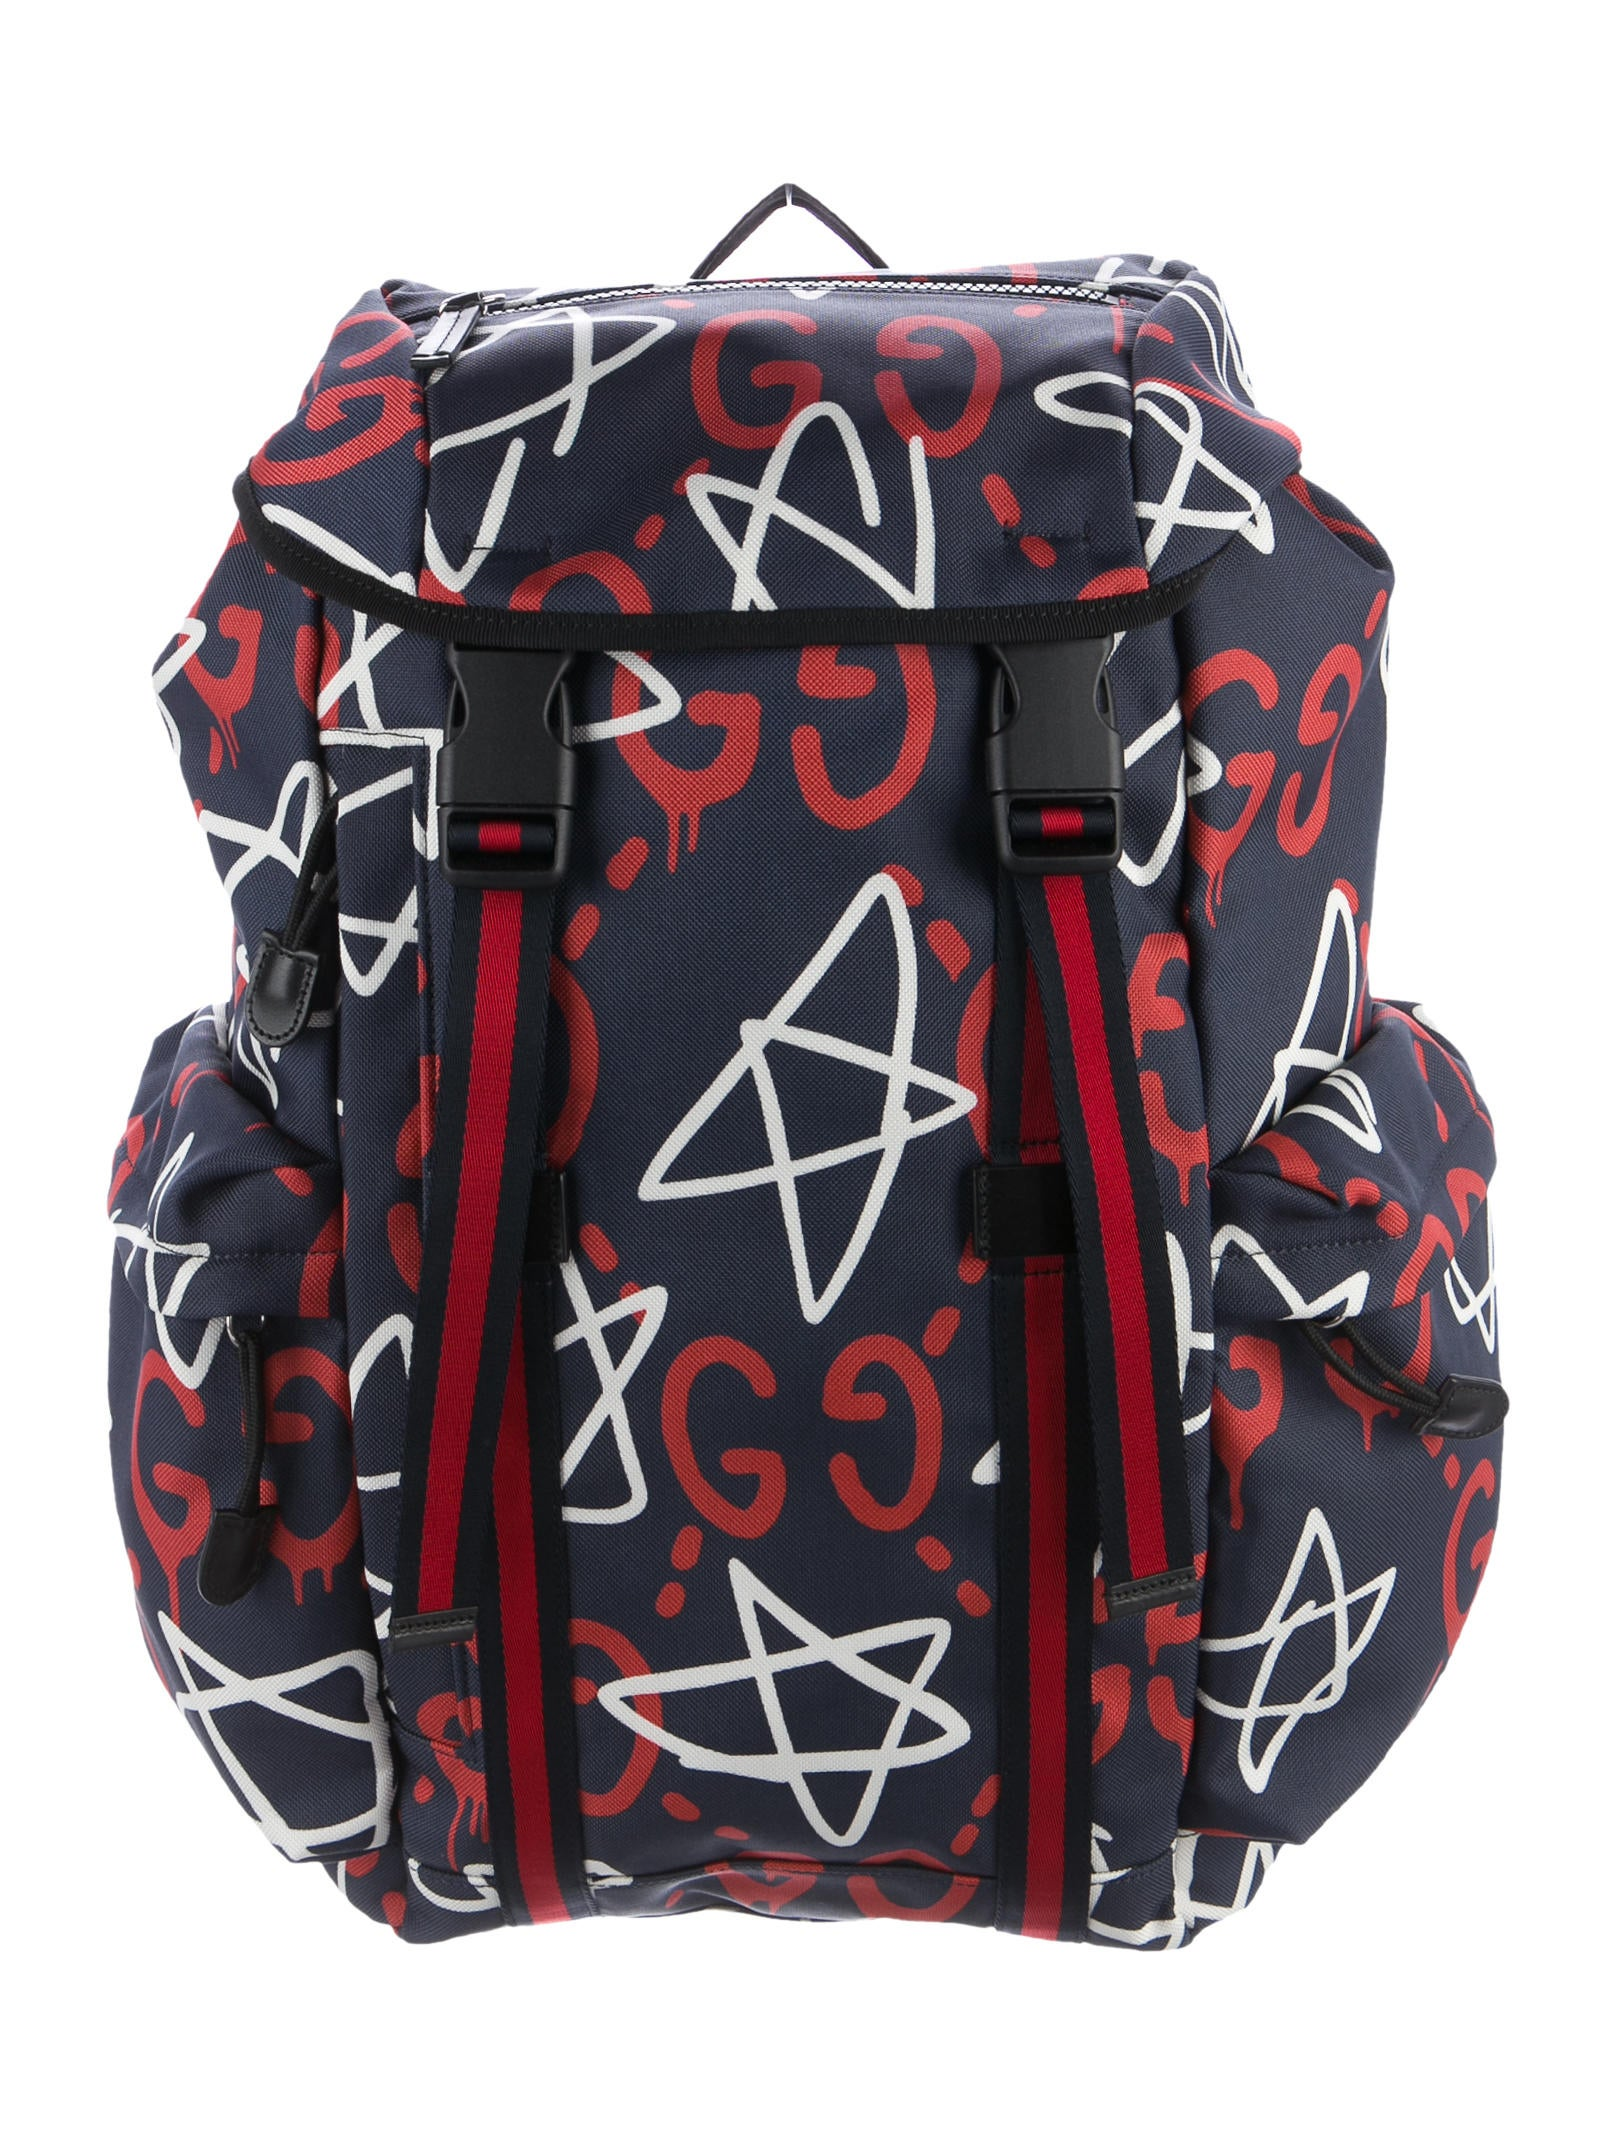 1d2877aa0 Gucci 2016 GucciGhost Backpack - Bags - GUC161215 | The RealReal